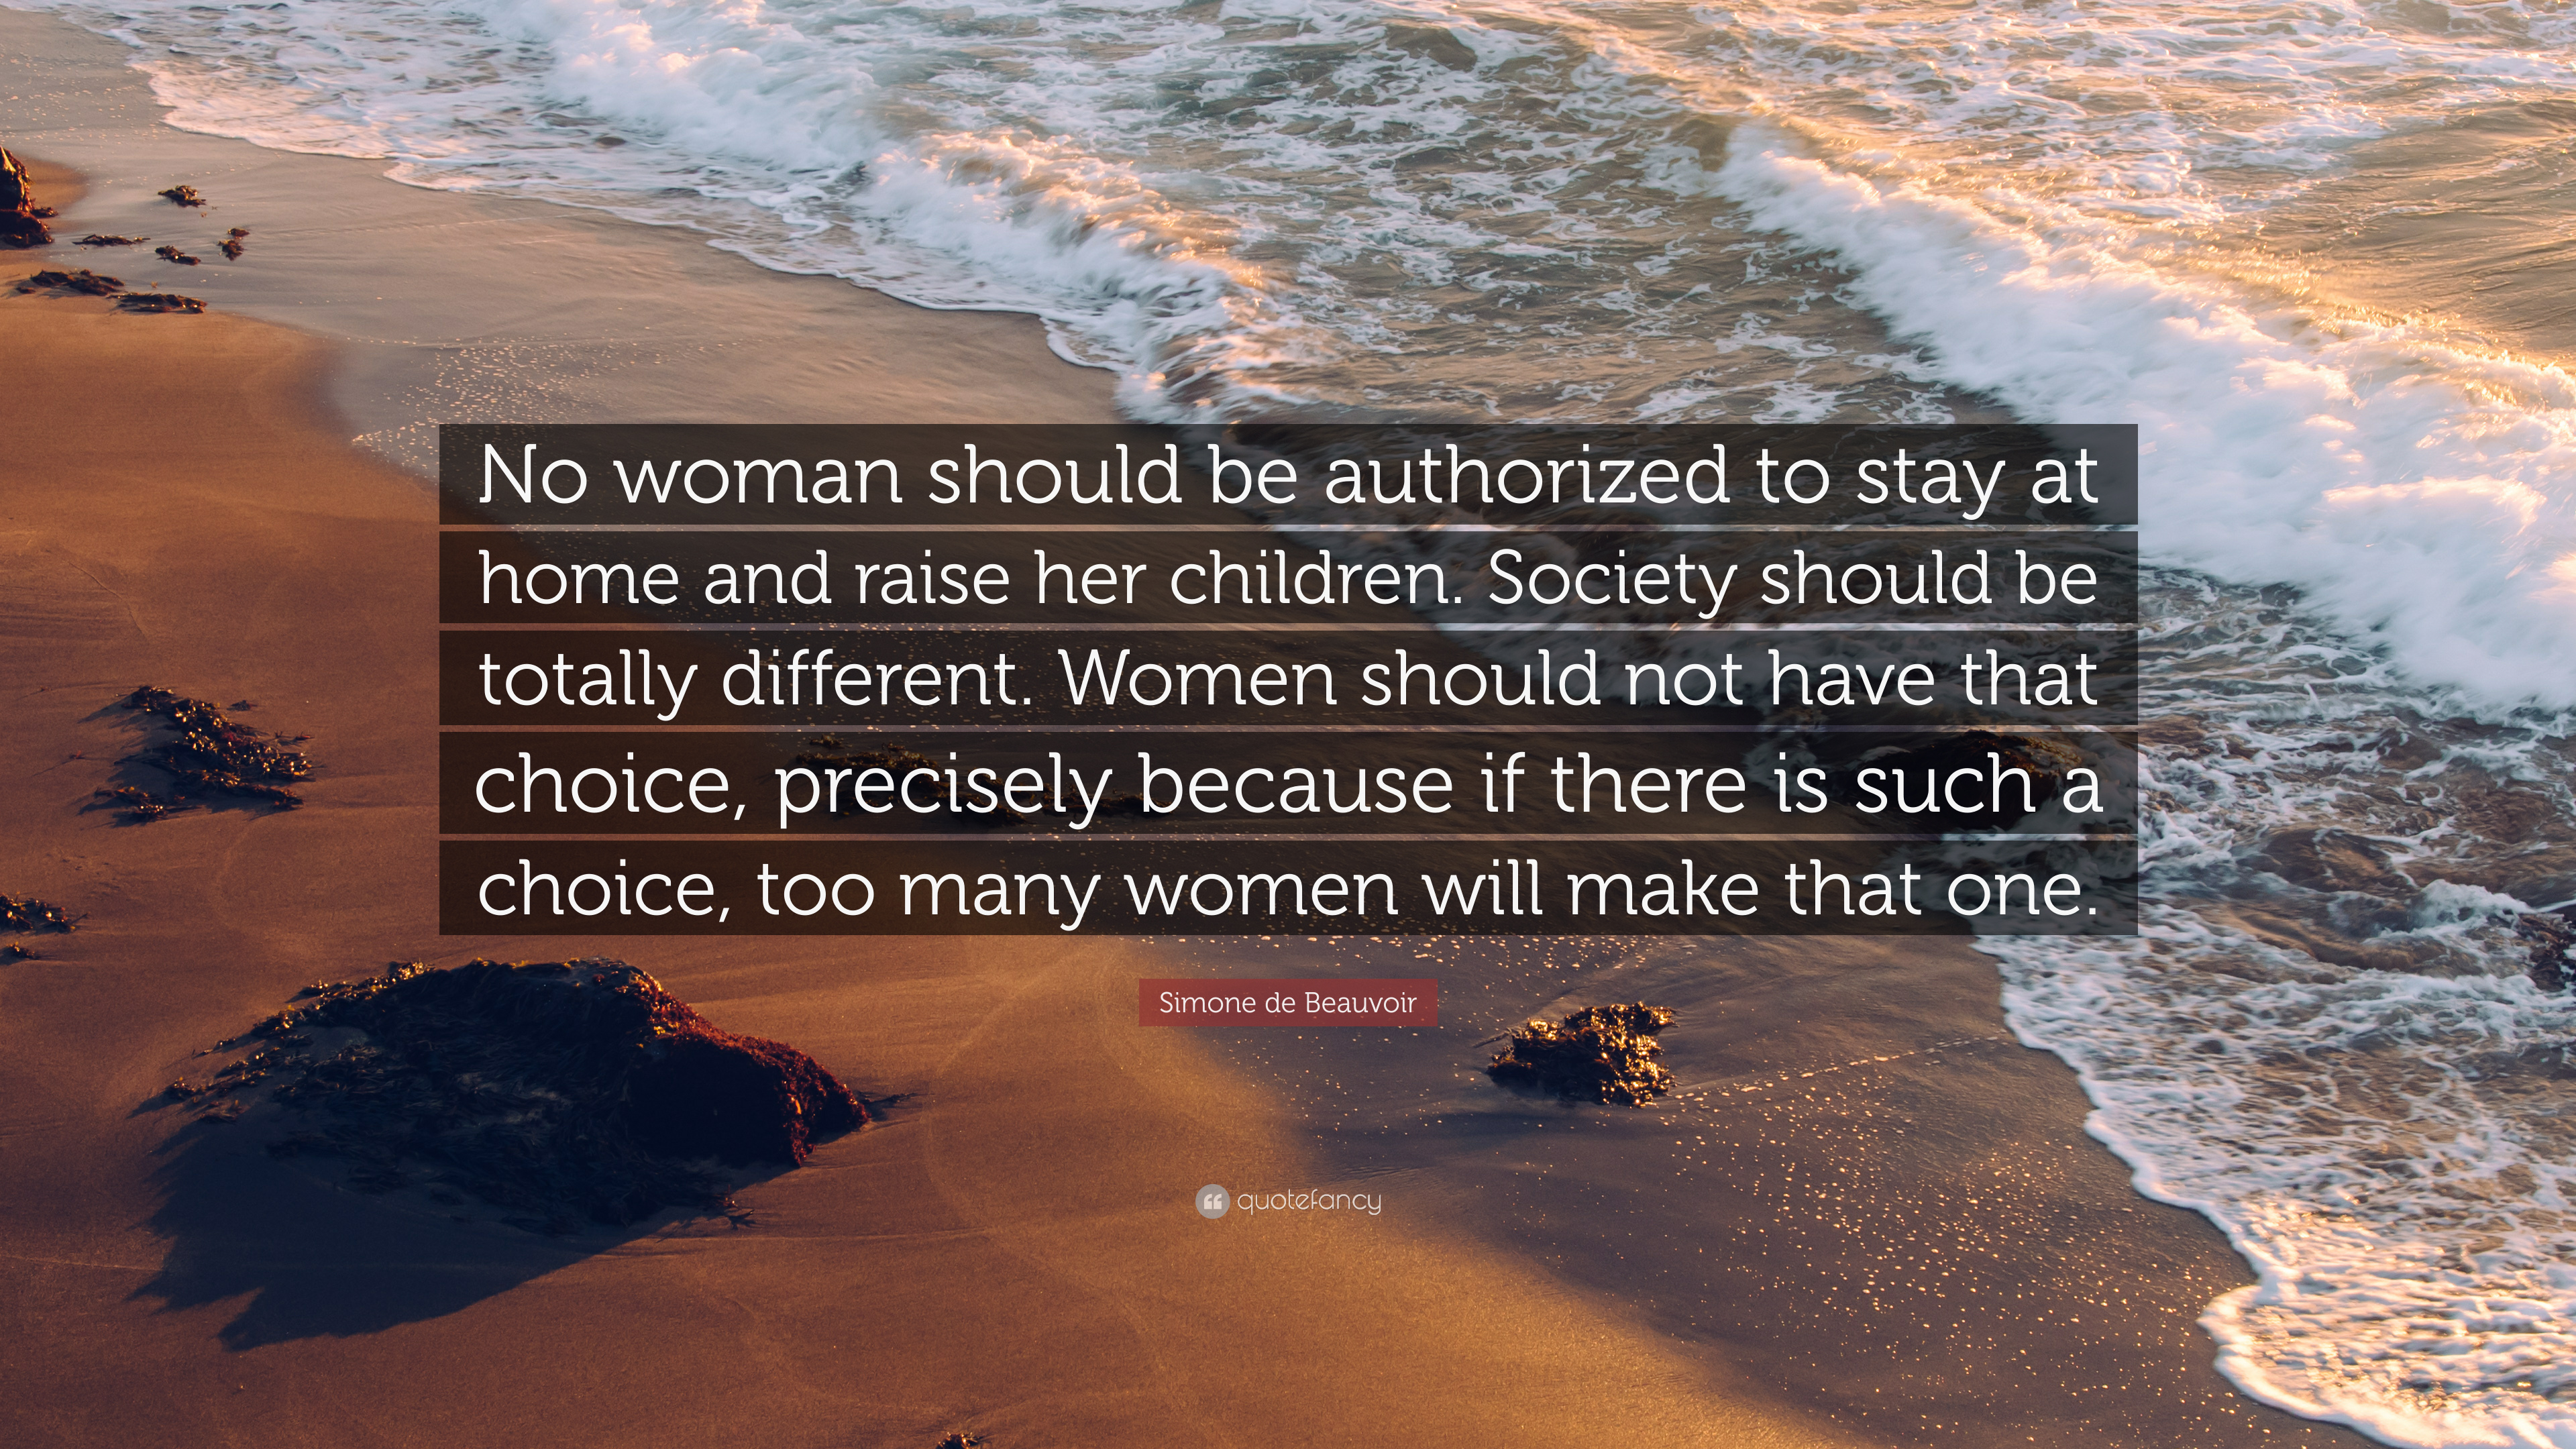 women should not stay at home